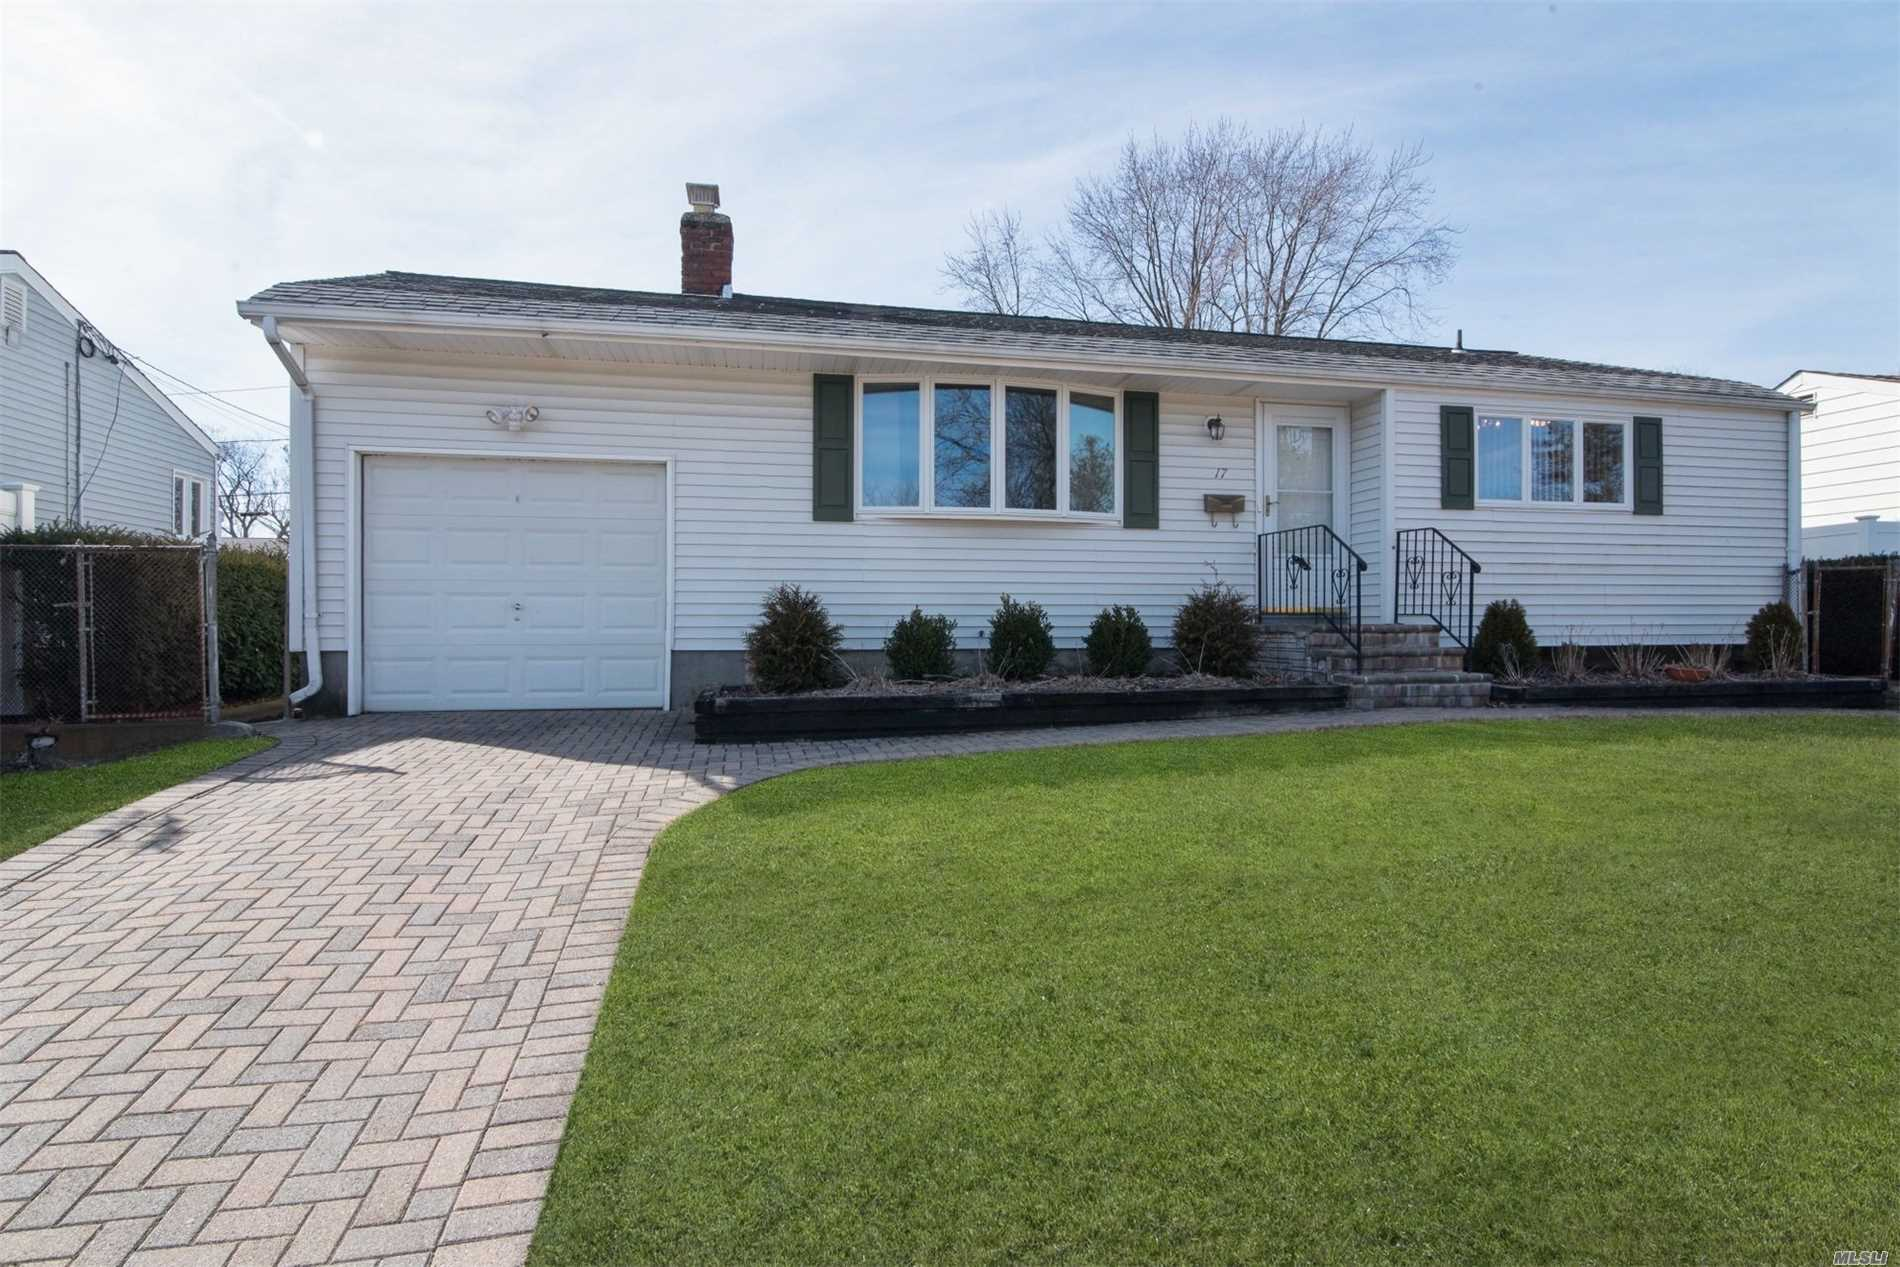 Sparkling Clean 3 Bedroom Ranch, W/ Paver Driveway, Walkway & Stoop. Updated Windows, Hot Water Heater & Heating System,  In-Ground Sprinklers And Alarm System. Tree Lined Street With Side Walks Located In Commack's Blue Ribbon School District. Close To Shopping, Restaurants And Houses Of Worship. Enjoy The Summer Days On The Covered Patio!